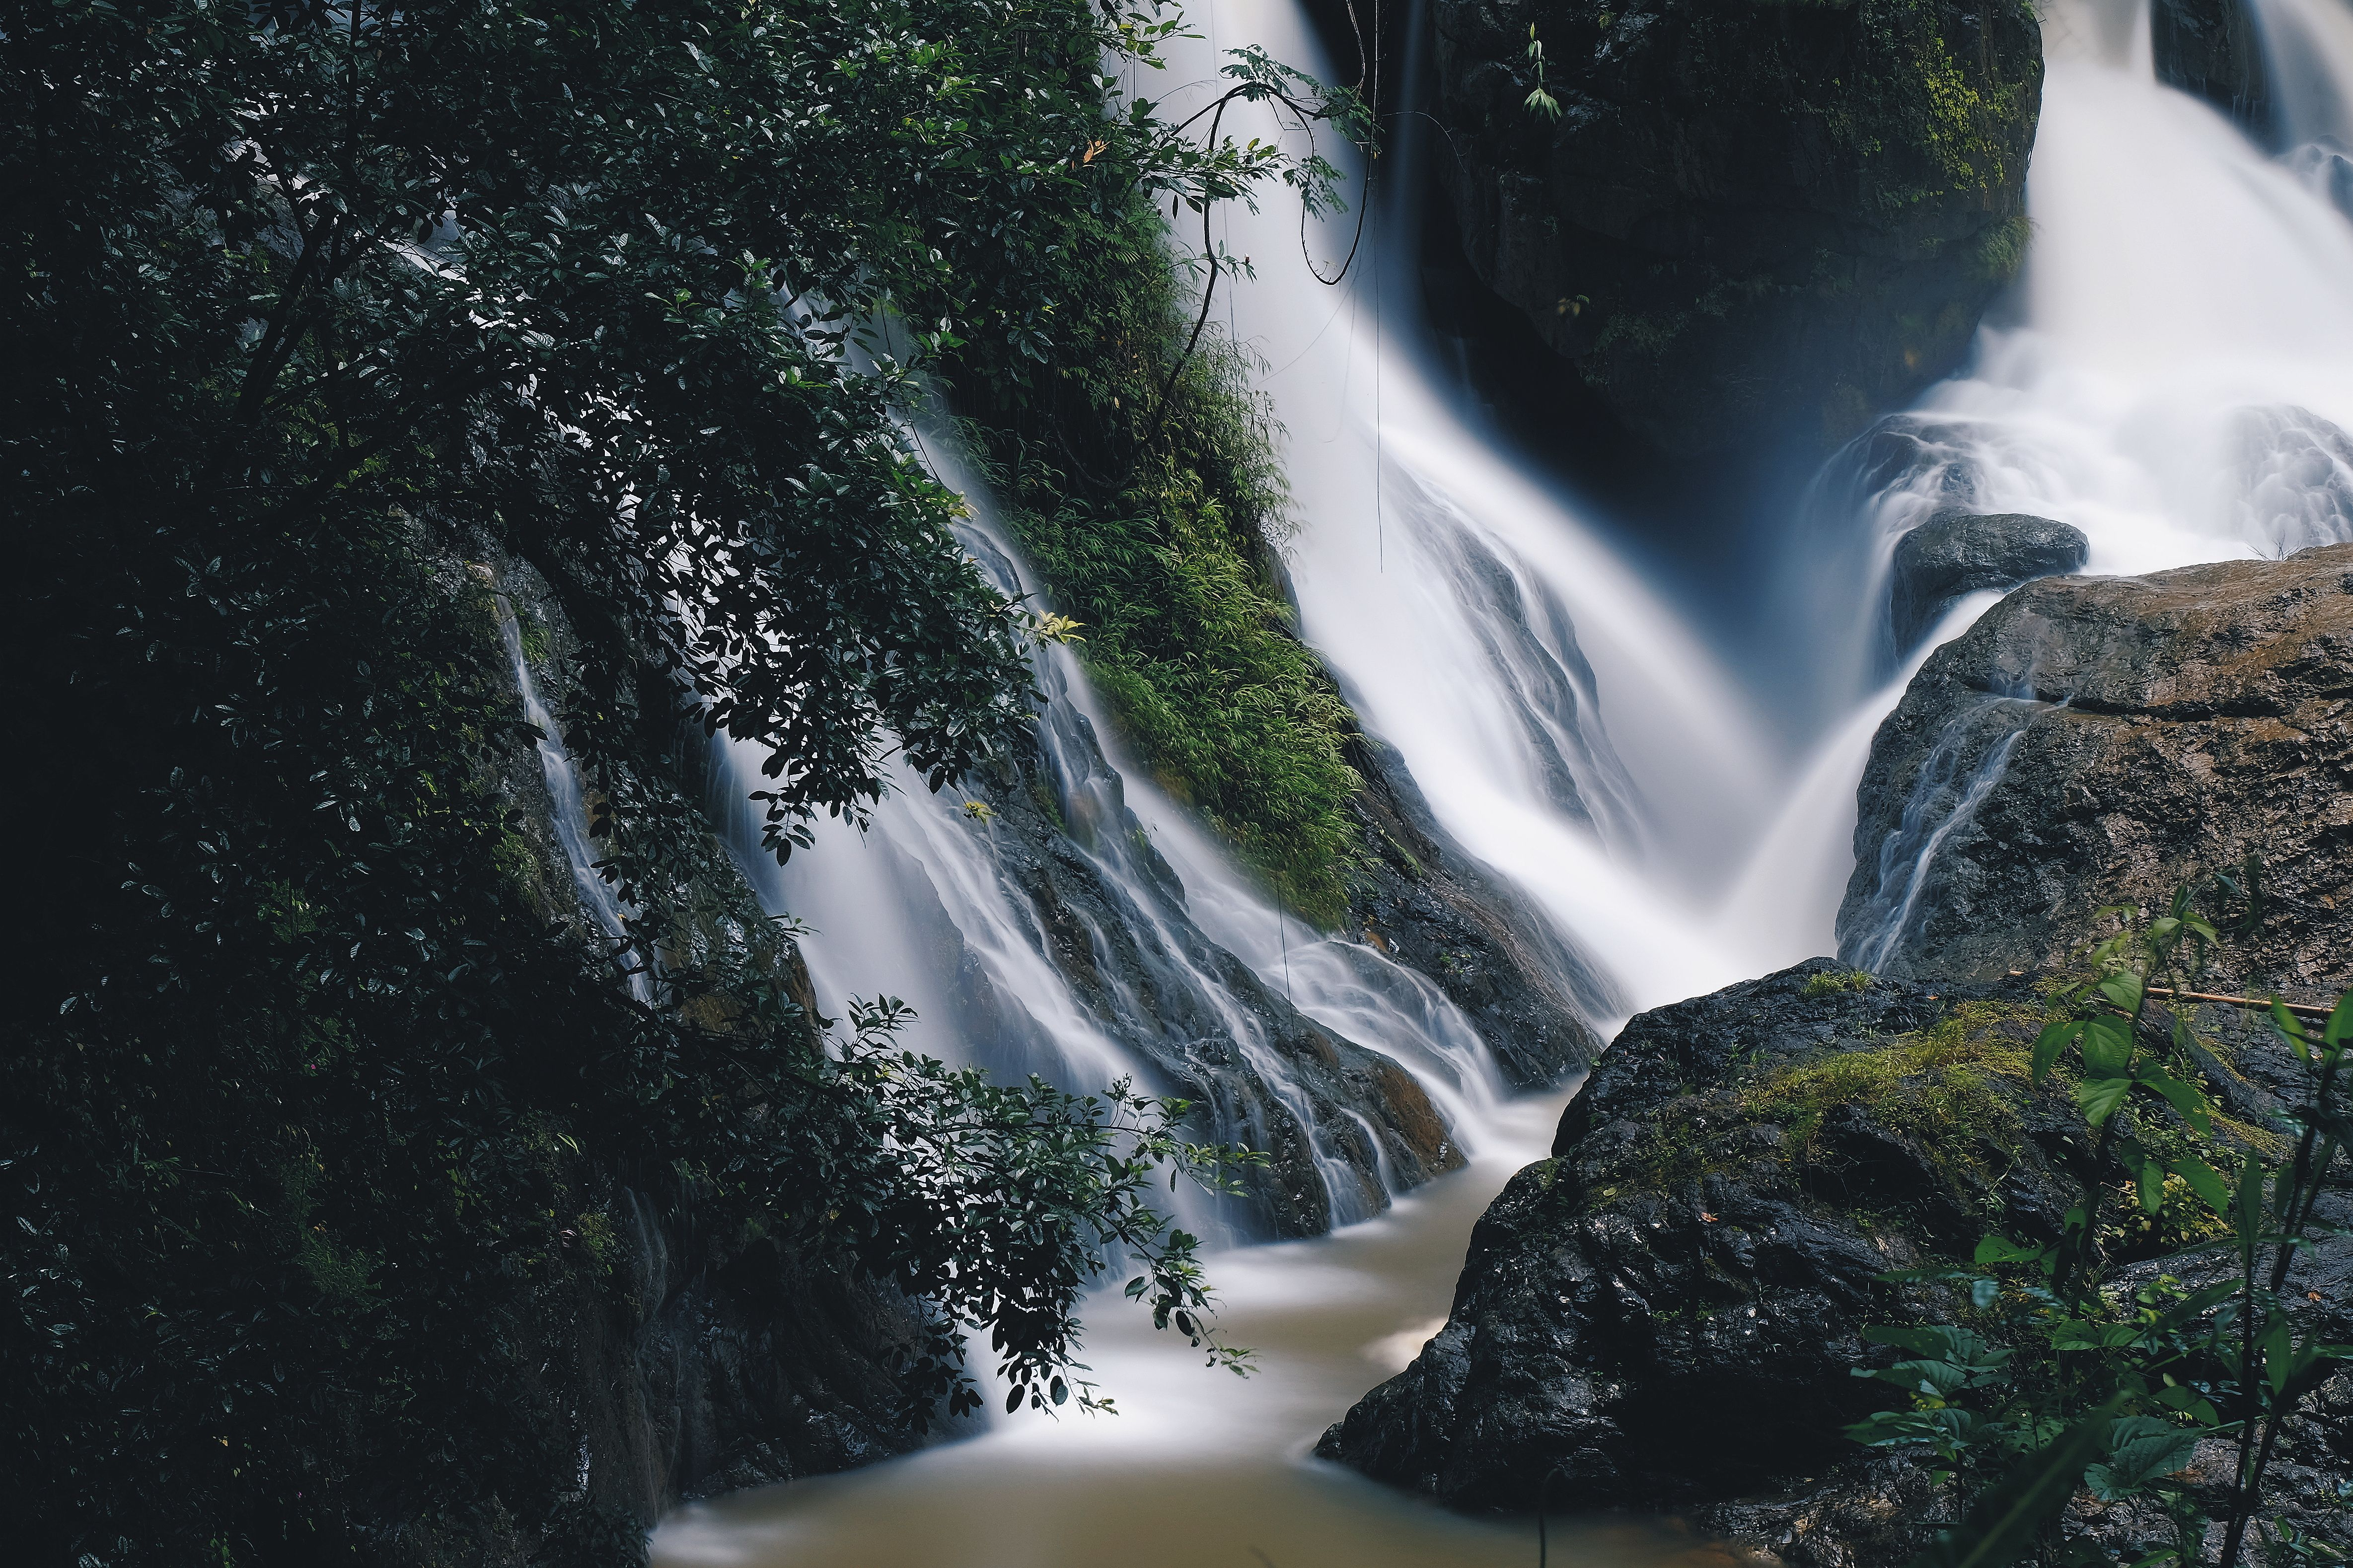 Waterfall in the forest in Pai, Thailand